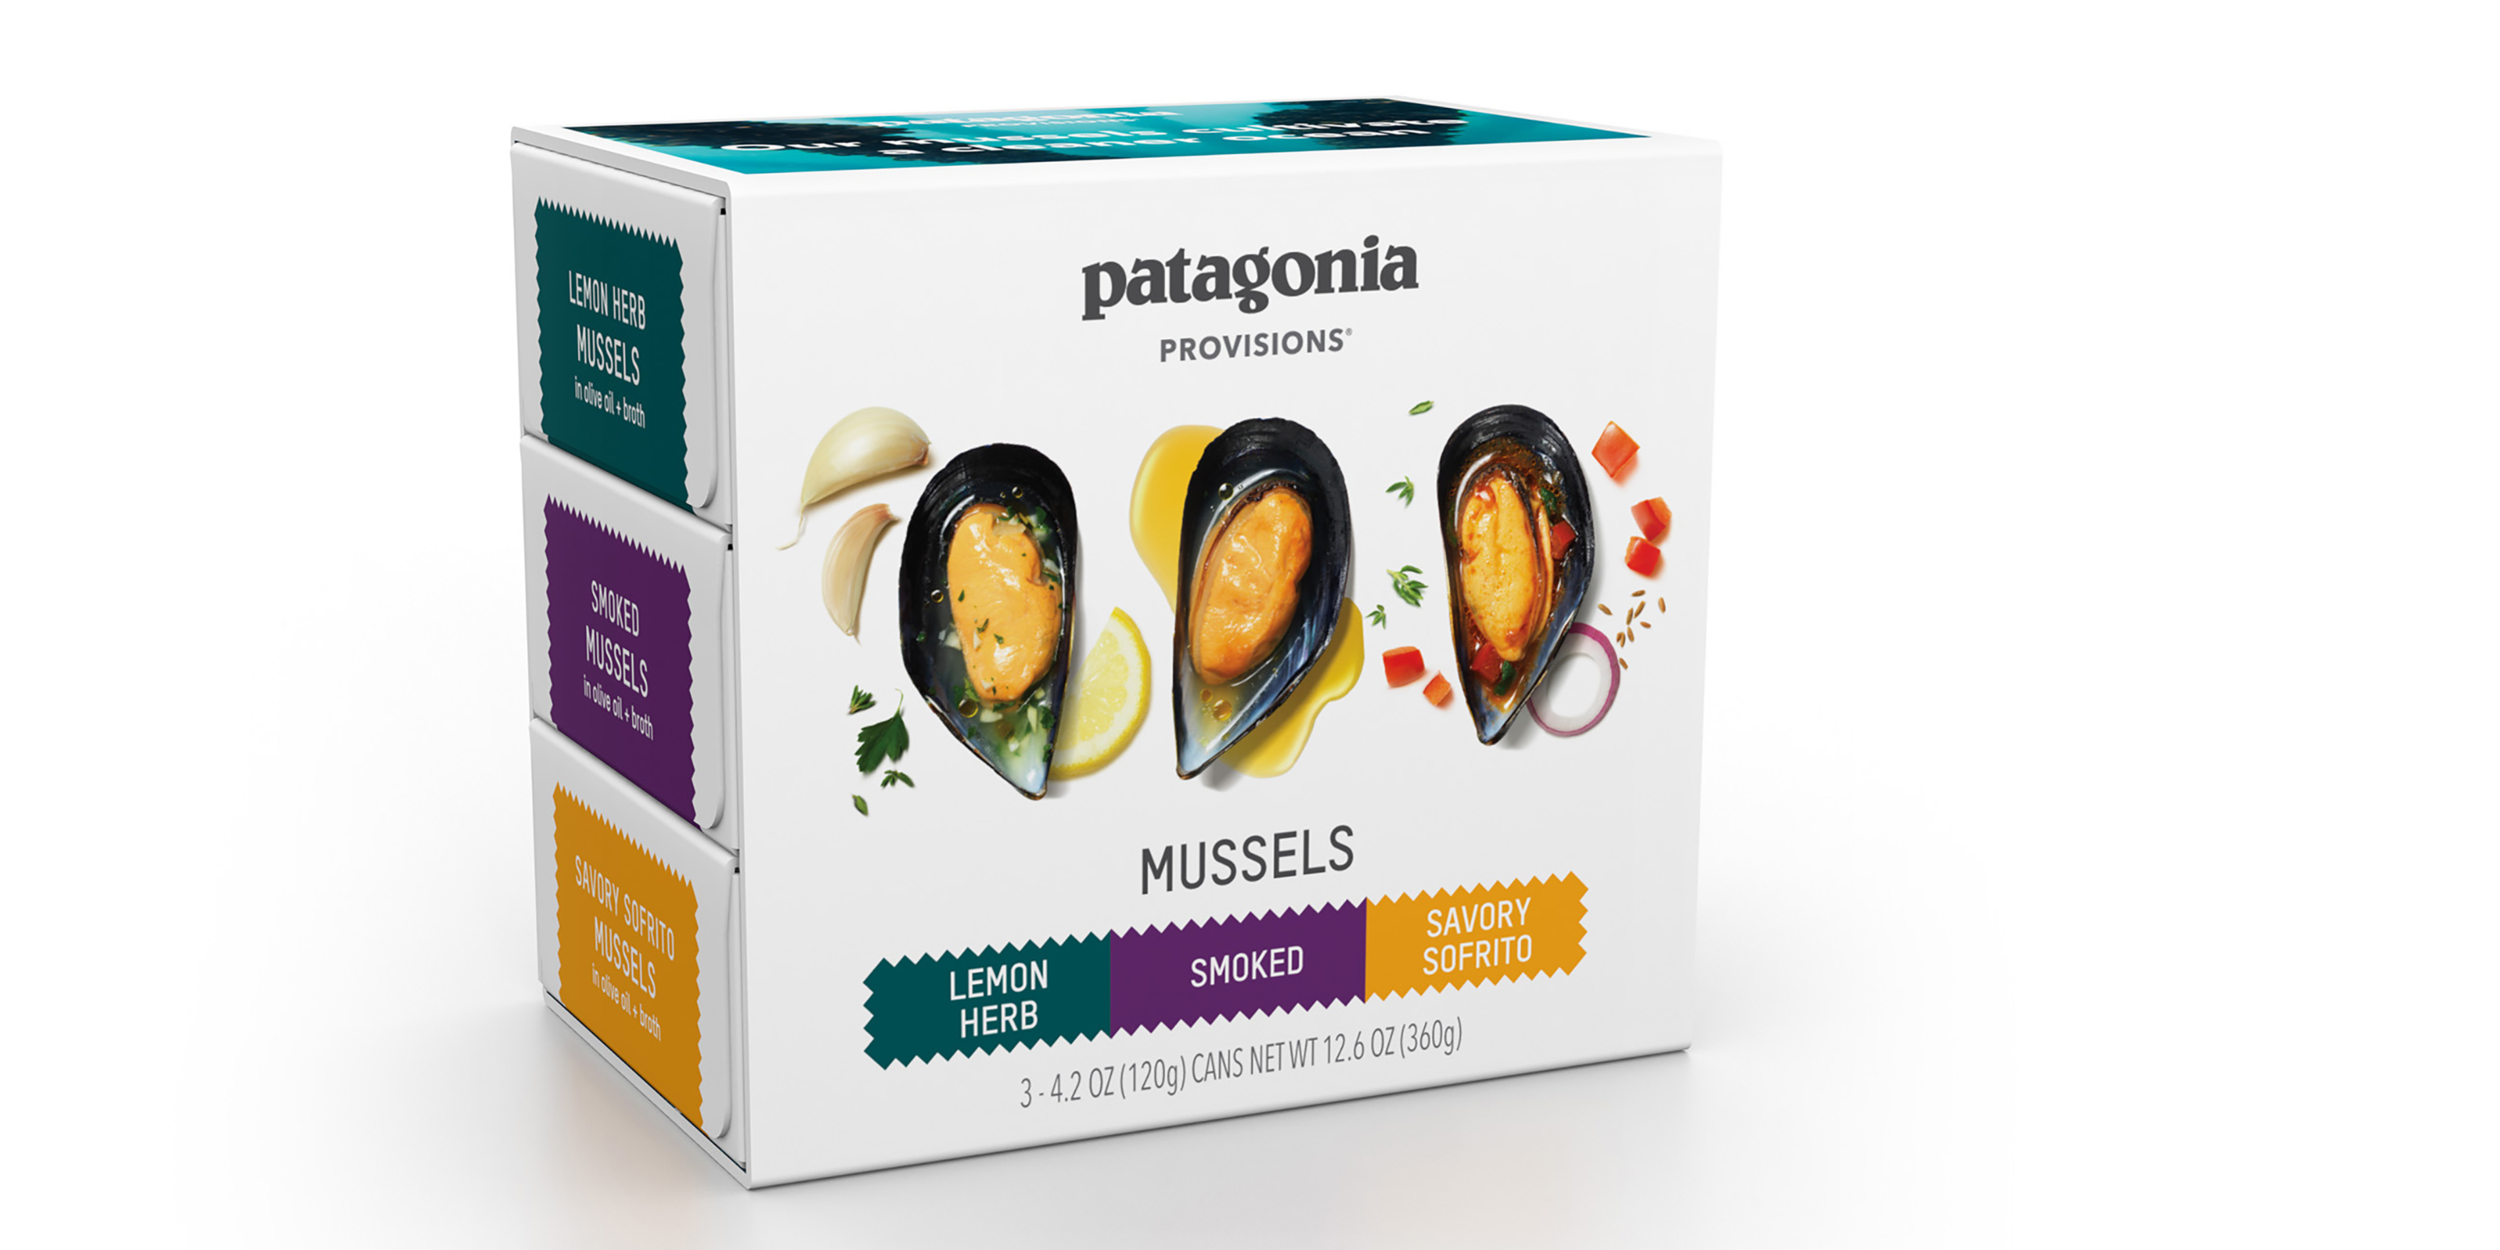 PP Mussels sleeve front angle_16_9.png